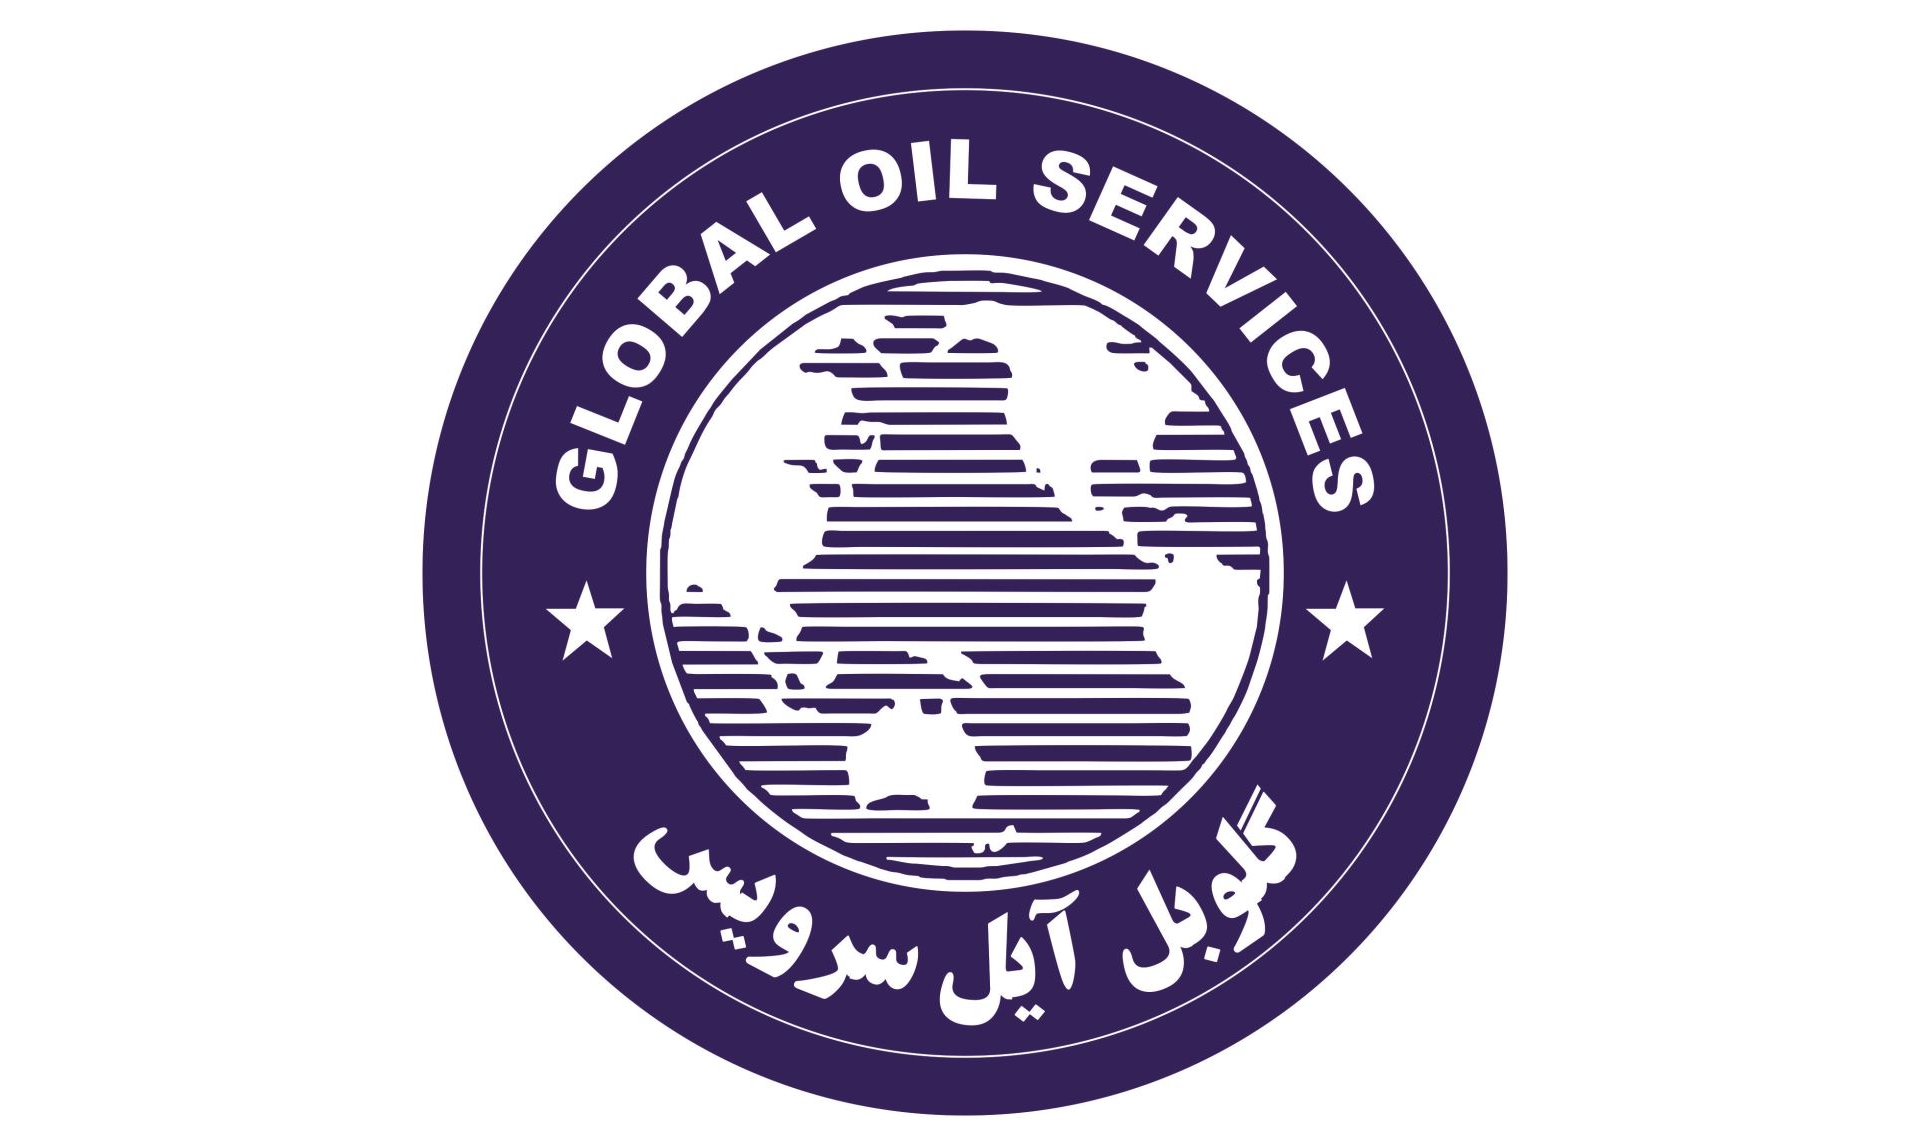 Global Oil Services